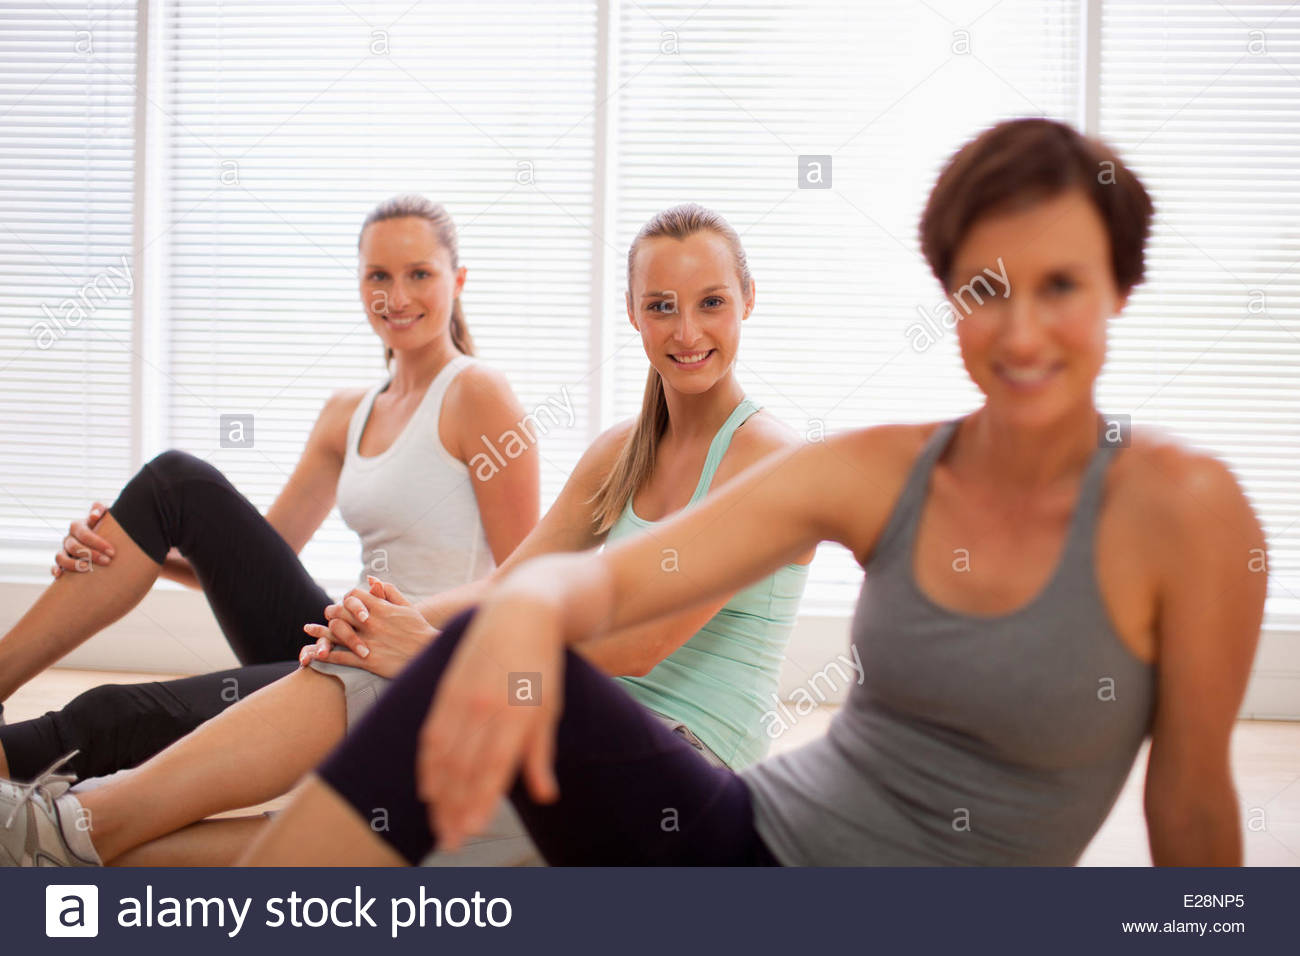 Portrait of smiling women sitting in a row in fitness studio - Stock Image